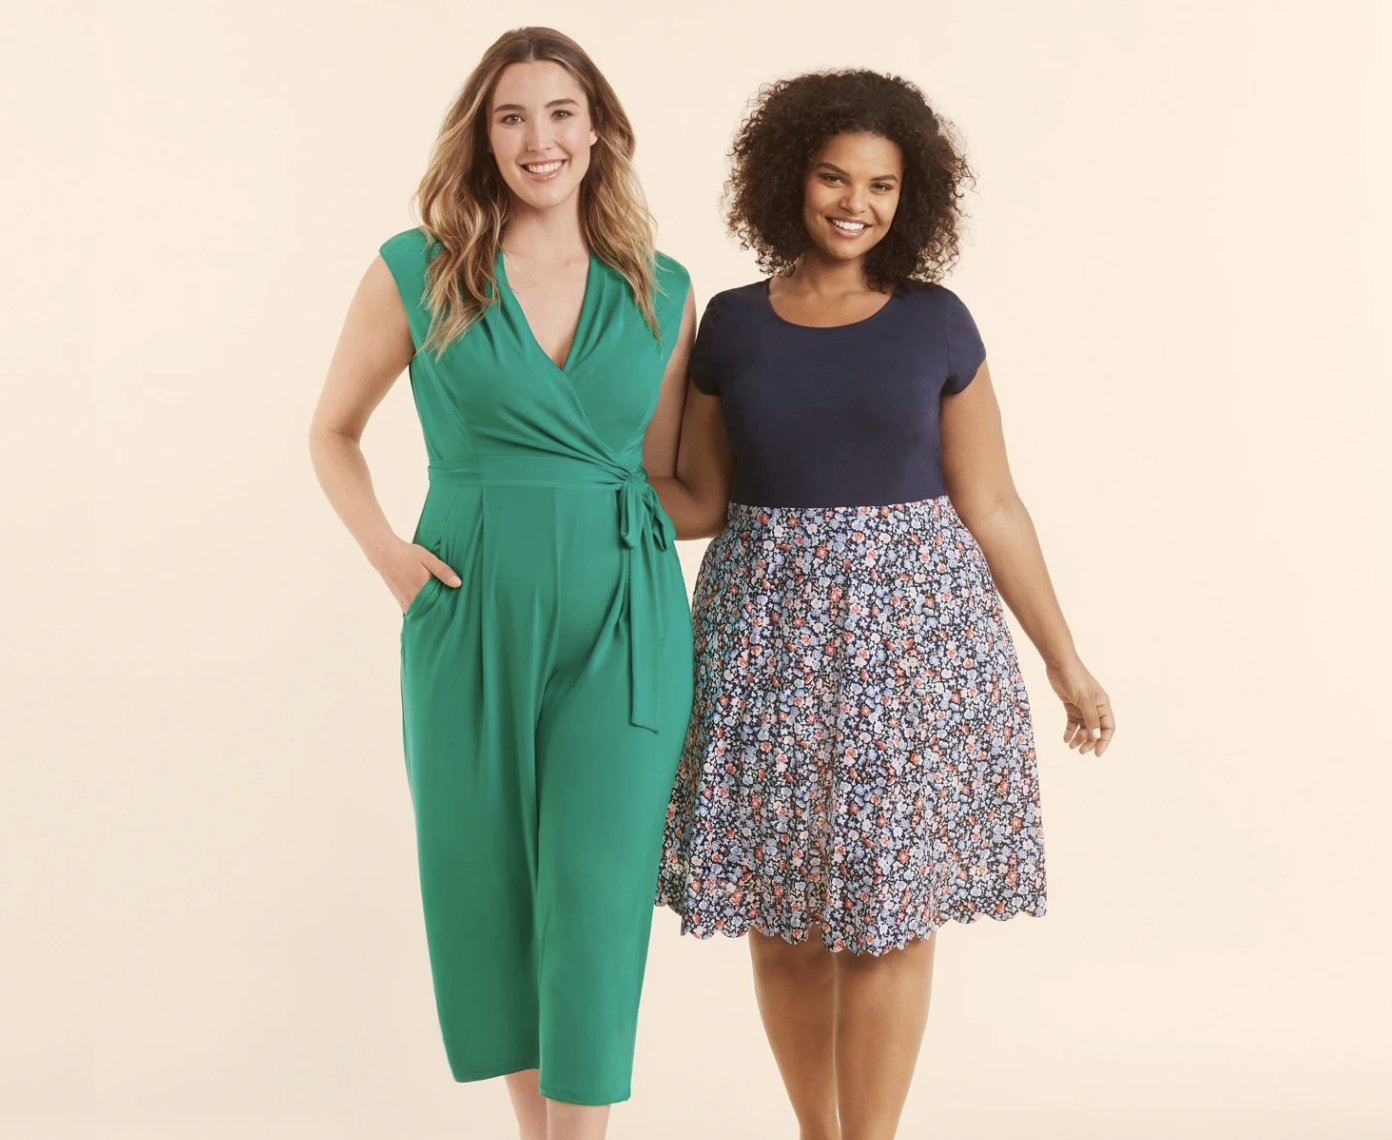 on left, model in tie-waist sleeveless green jumpsuit, and on right, model in navy tee and floral-printed skirt